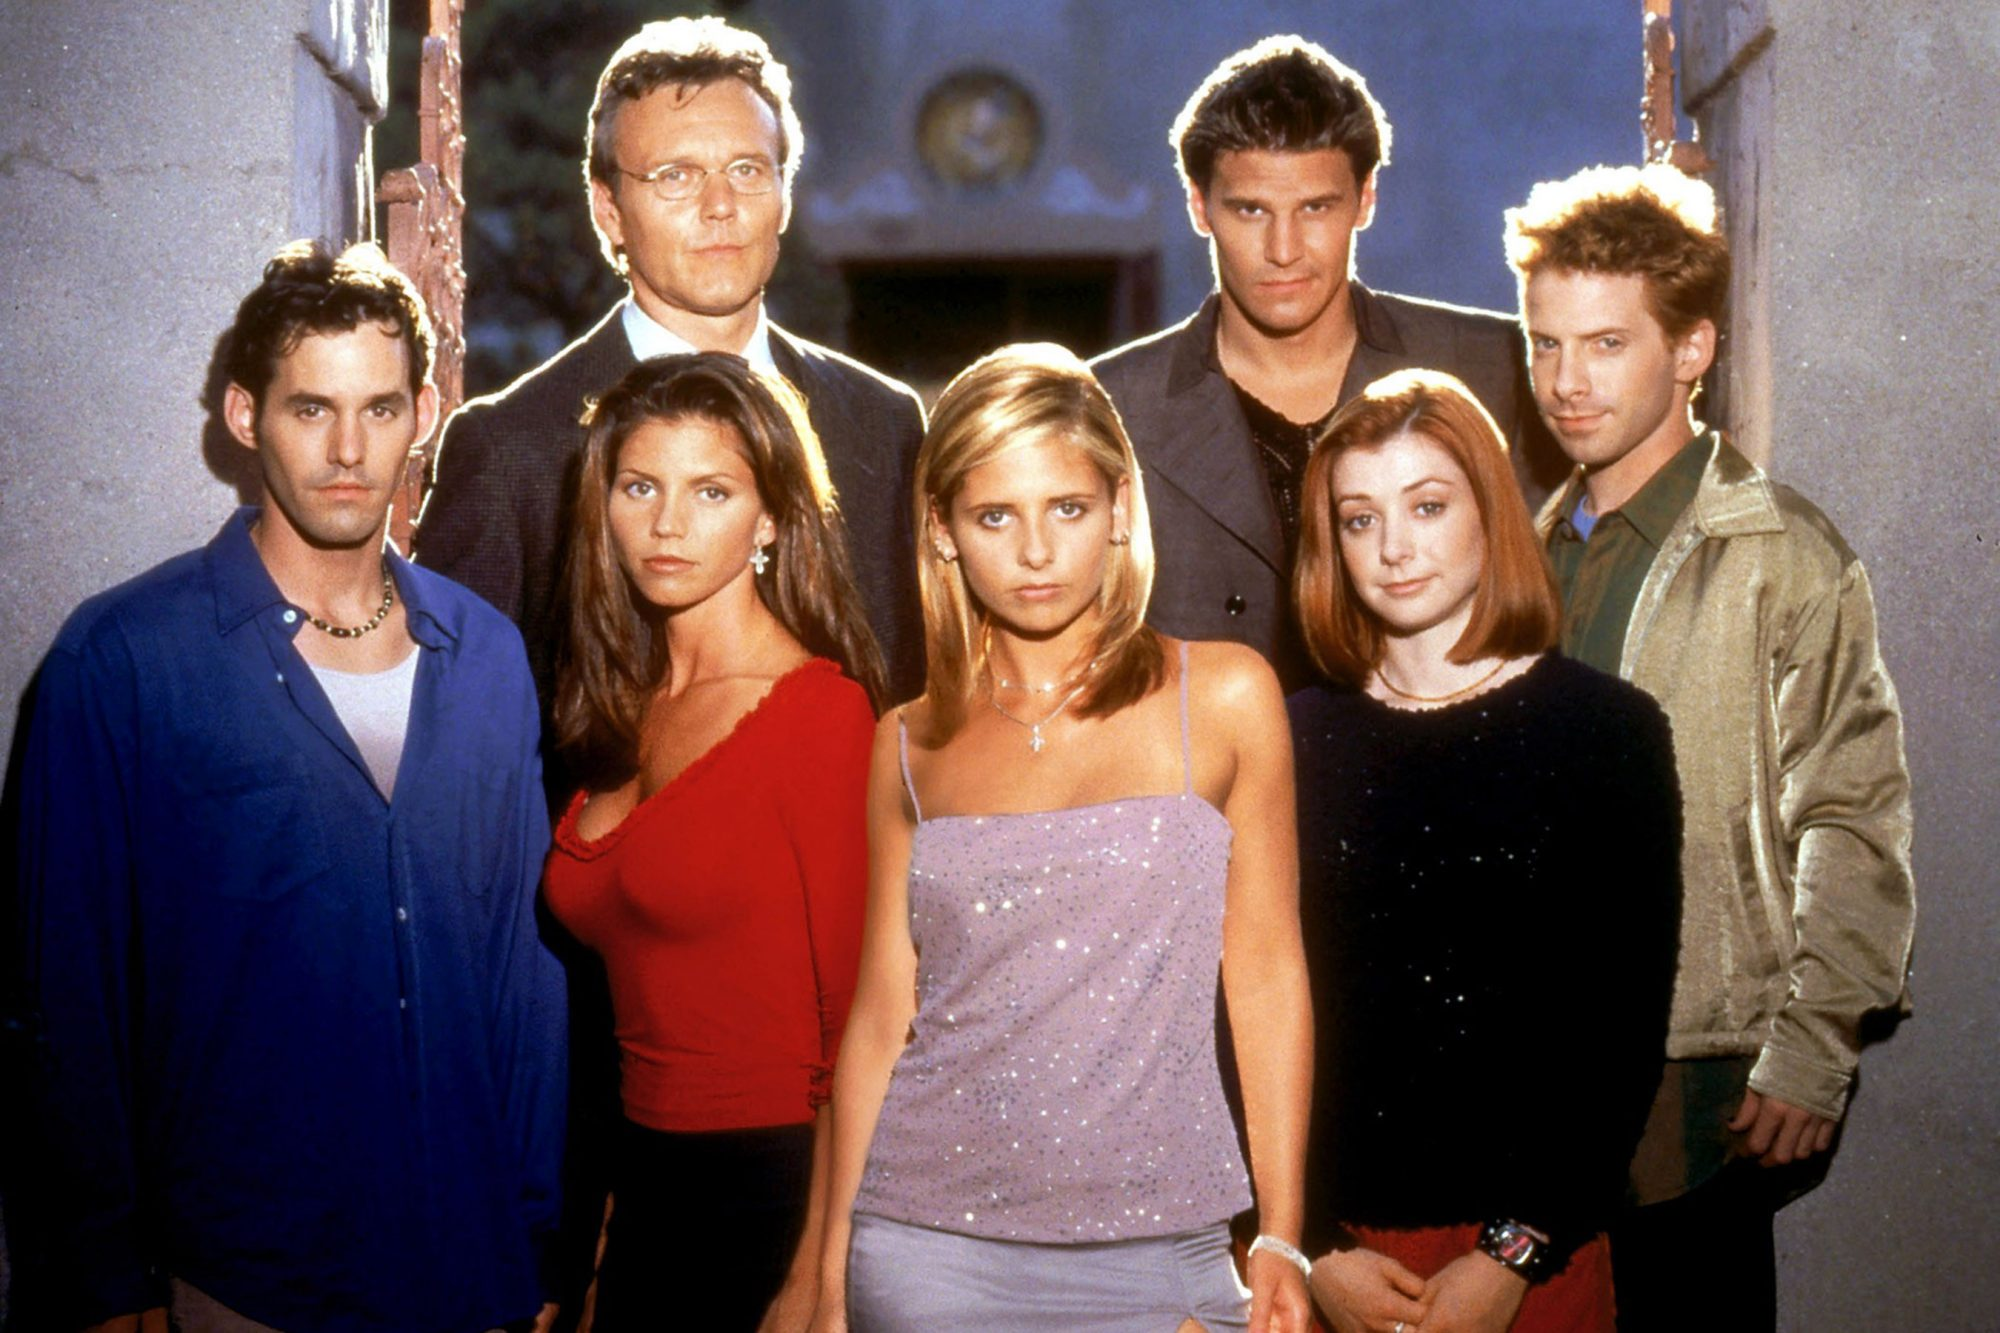 BUFFY THE VAMPIRE SLAYER, (back row): Anthony Head, David Boreanaz, Seth Green, (front): Nicholas Br